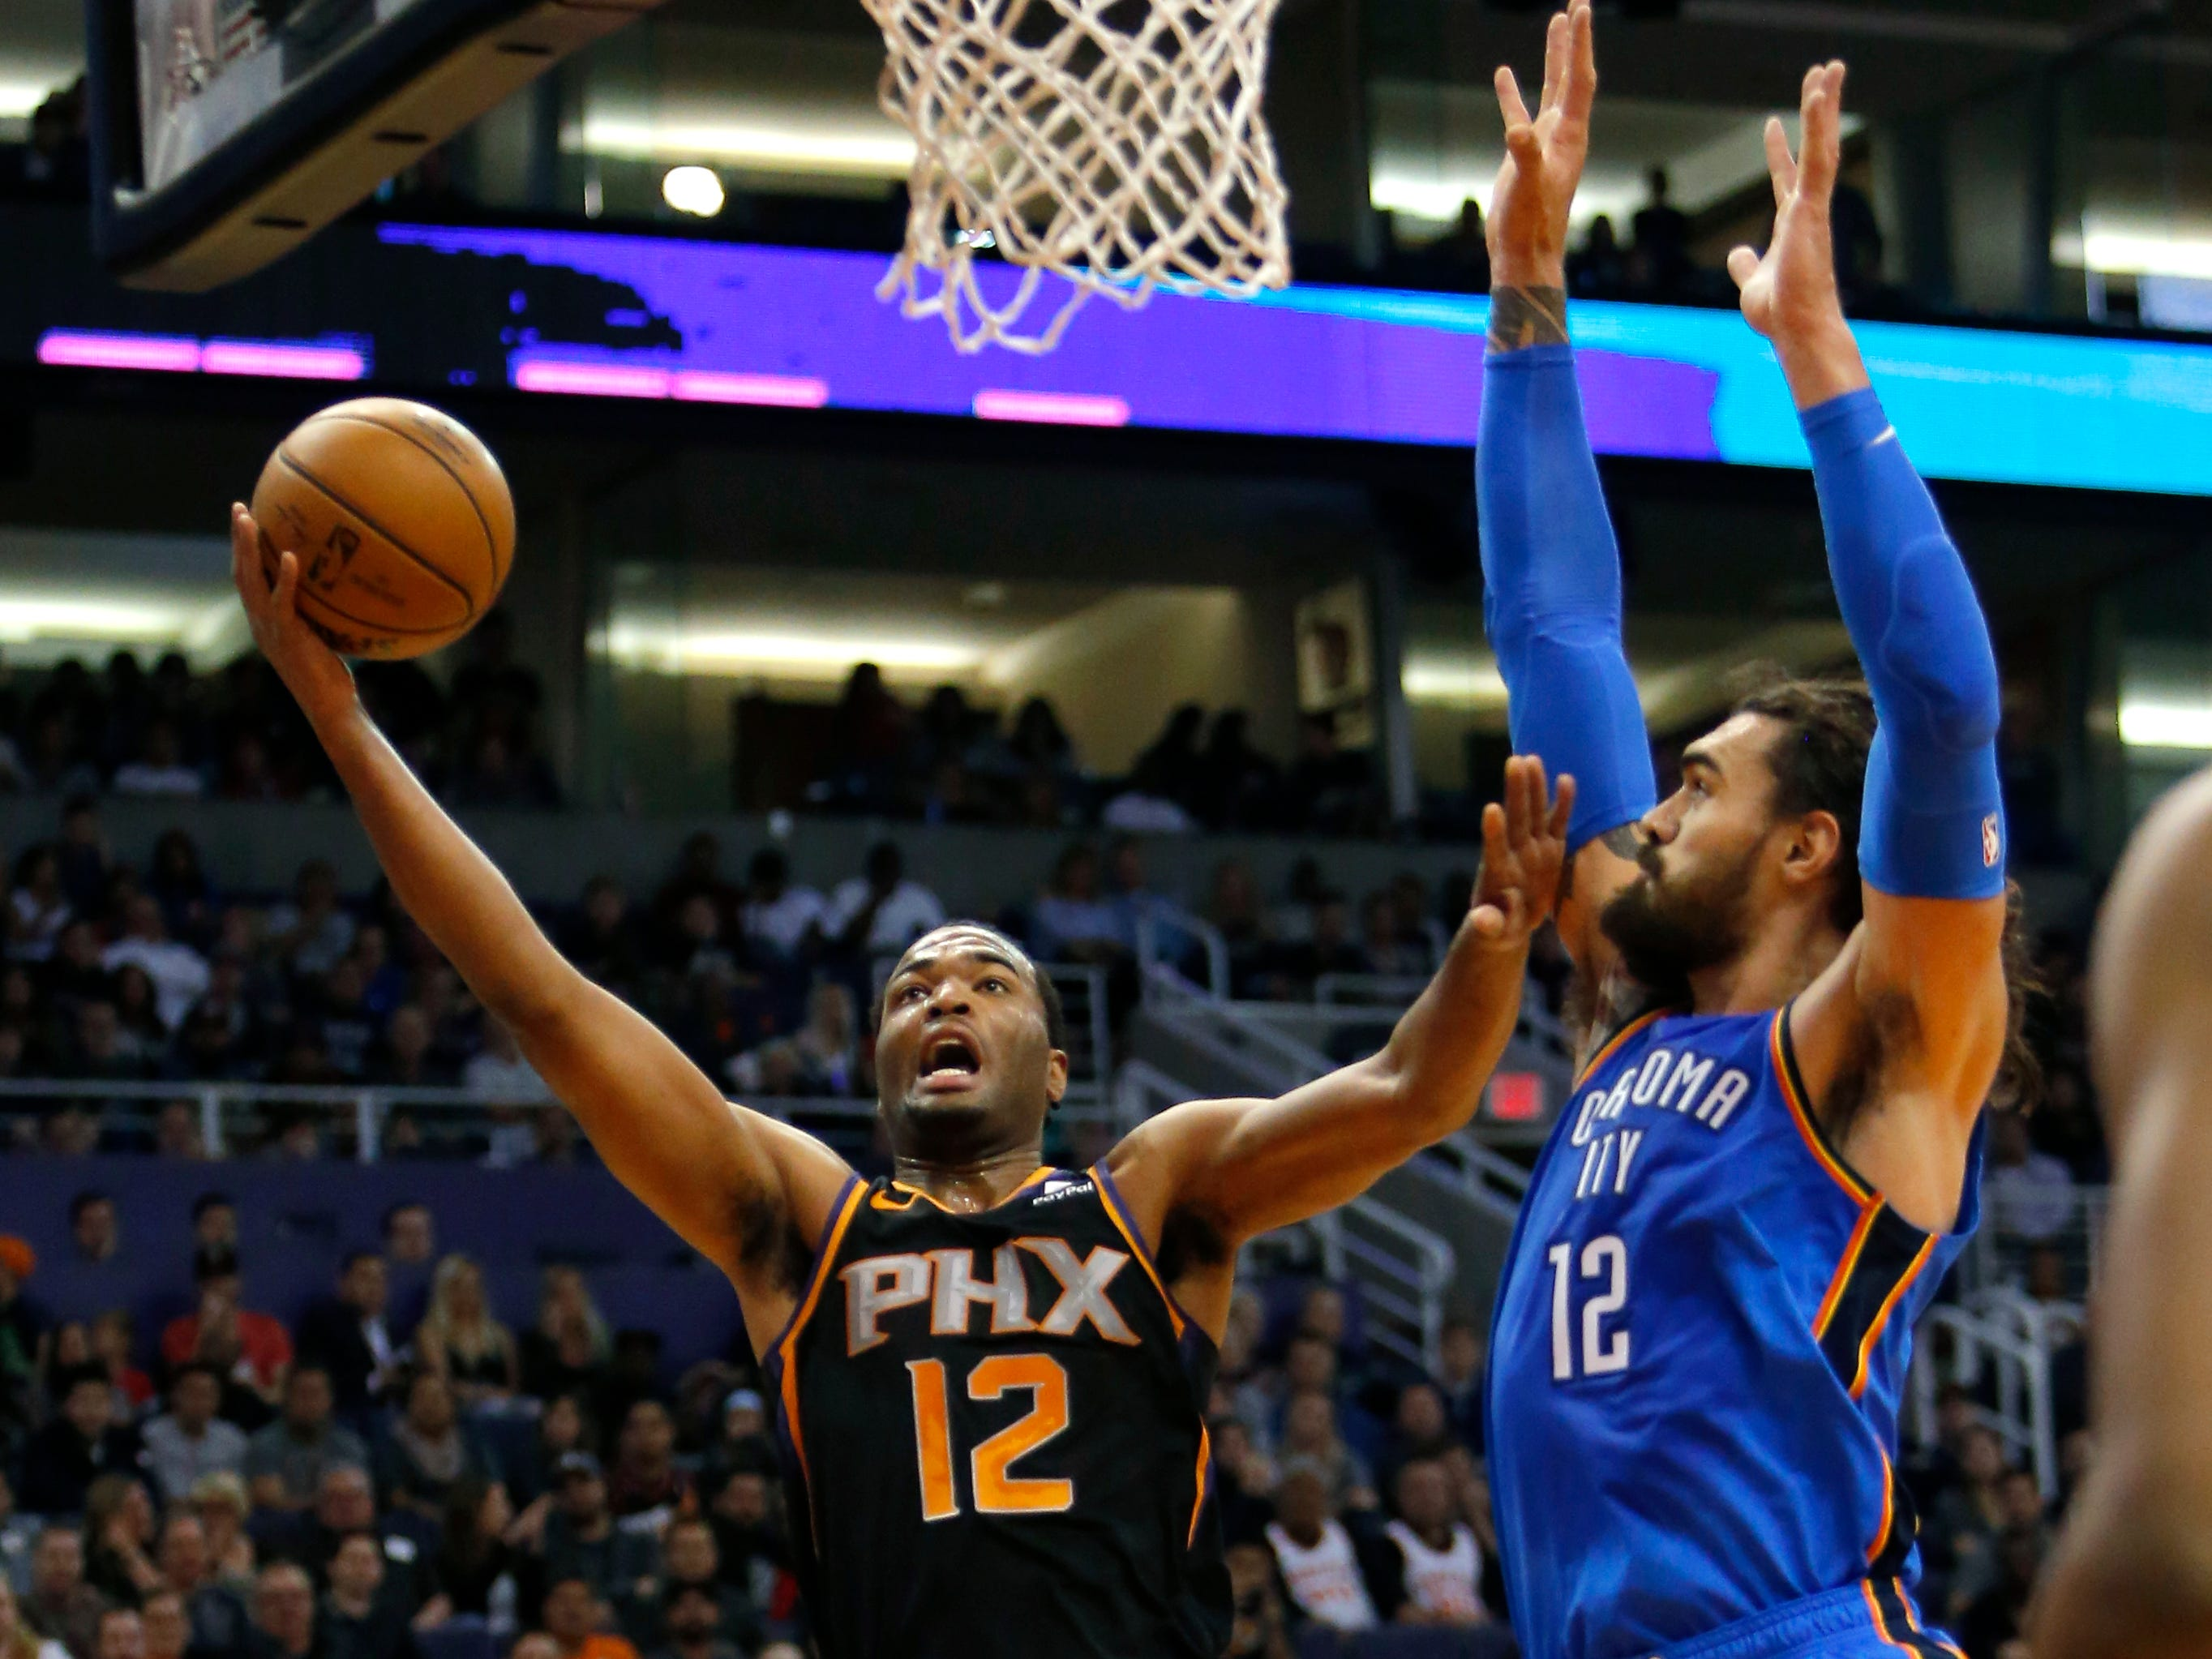 Phoenix Suns forward TJ Warren (12) in the first half during an NBA basketball game against the Oklahoma City Thunder, Saturday, Nov. 17, 2018, in Phoenix. (AP Photo/Rick Scuteri)